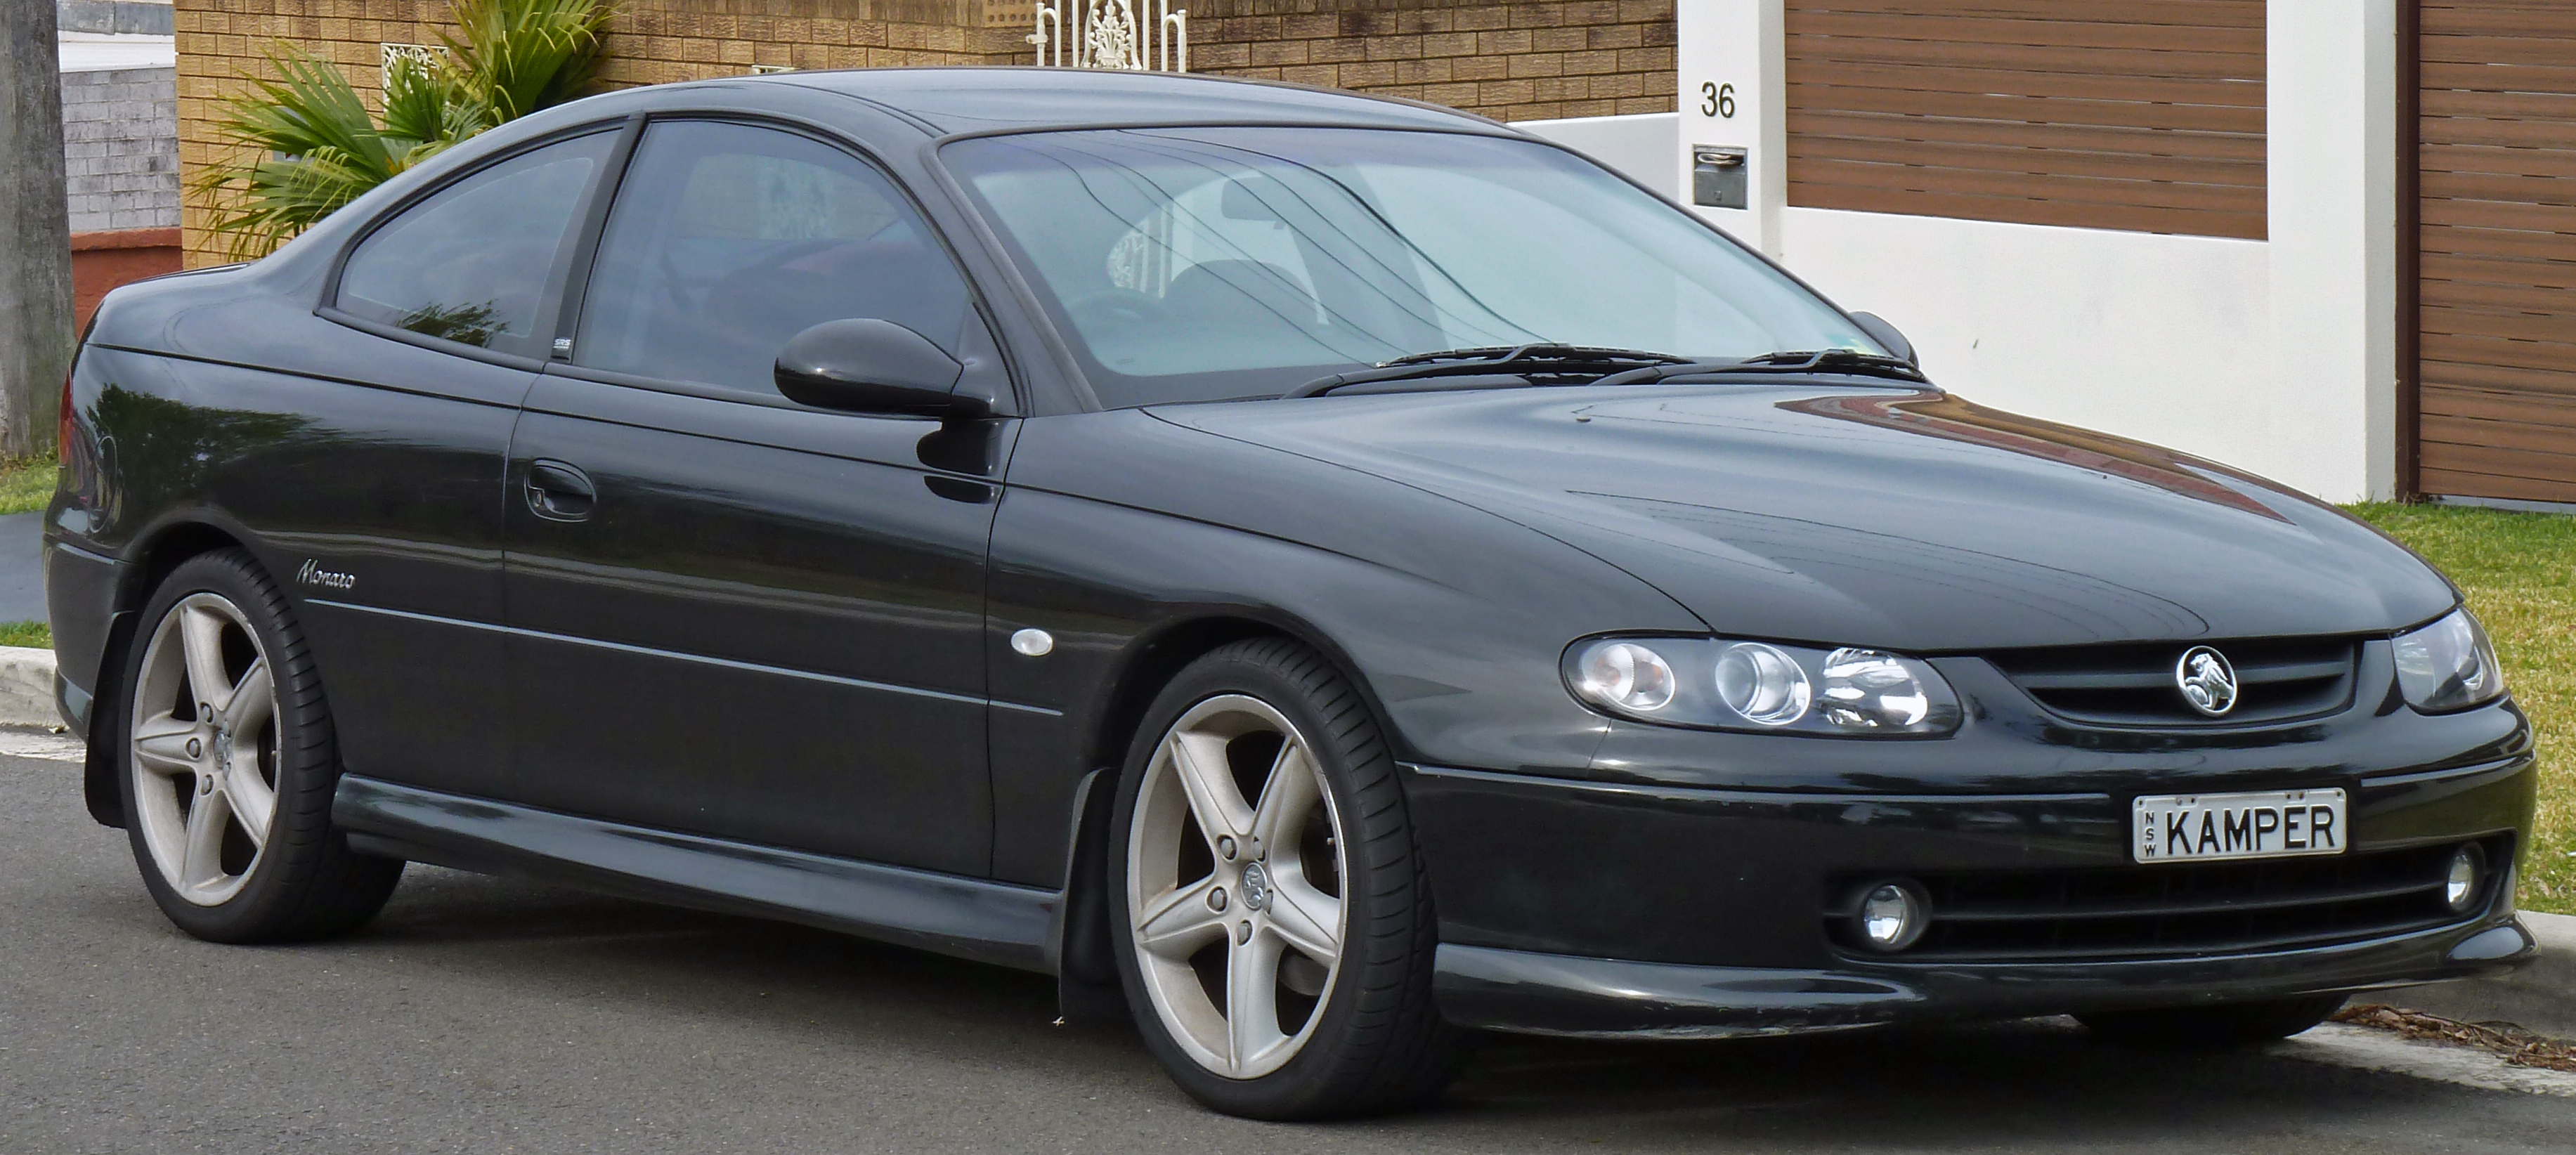 holden monaro pictures #3